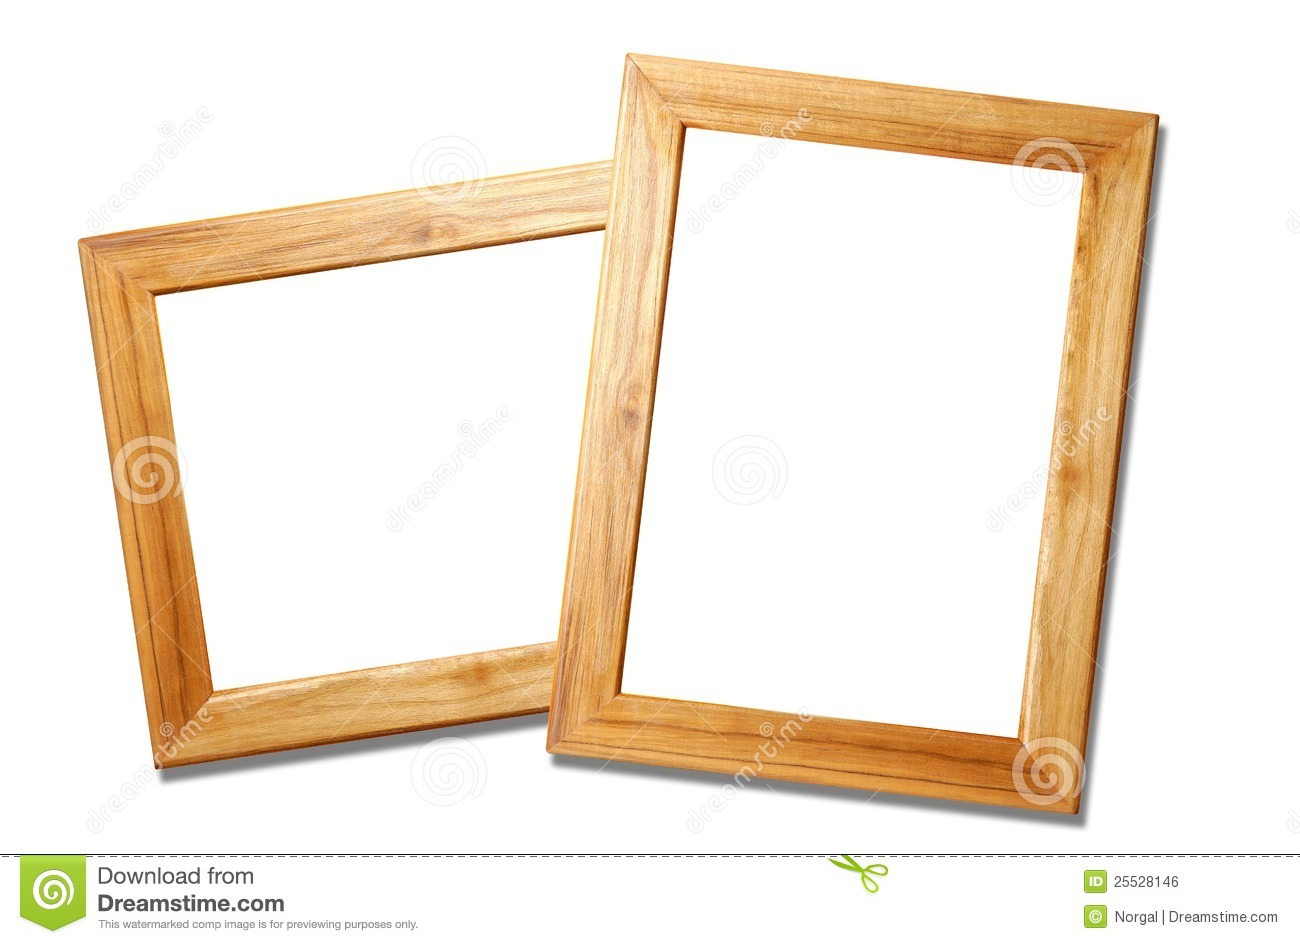 Two Wooden Picture Frames Stock Photo Image Of Brown 25528146